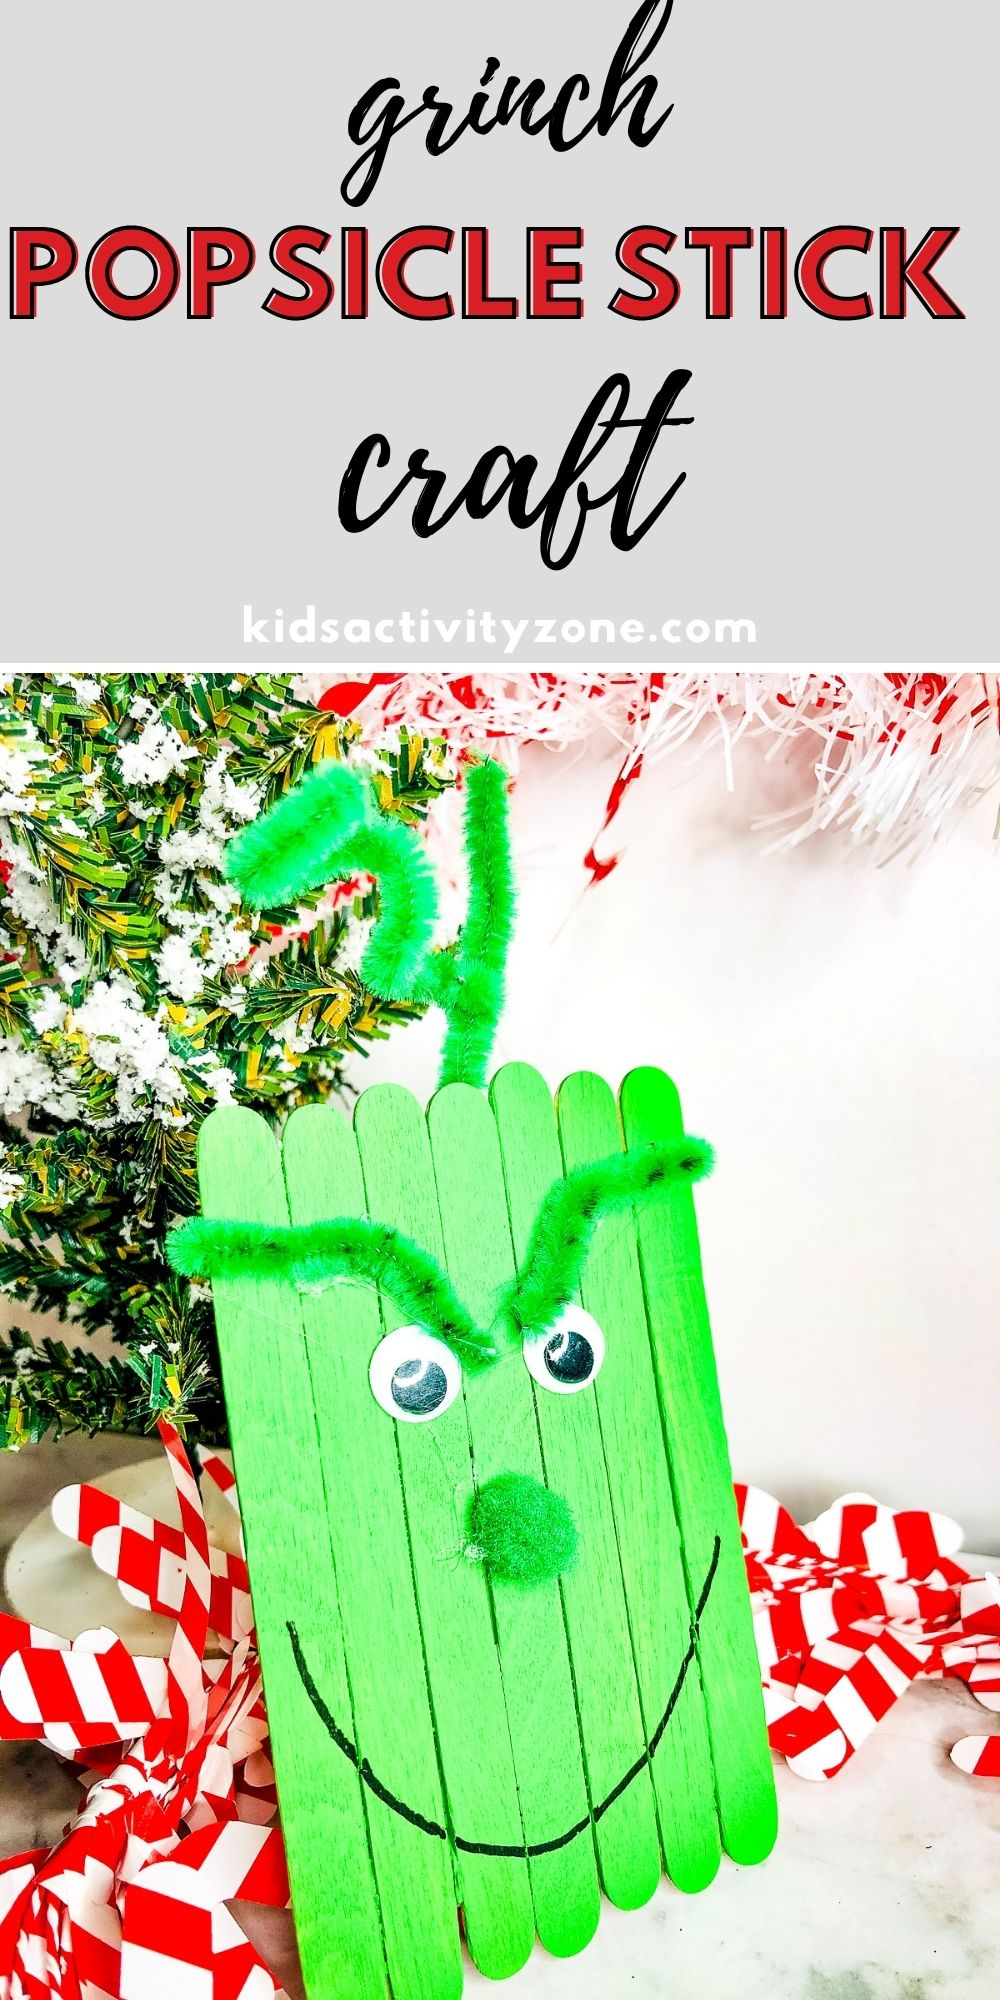 Grinch Popsicle Stick Craft is easy and fun! Tips on how to make it into an ornament if you'd like. Watch the movie, read the book and make this fun and easy Grinch Craft.